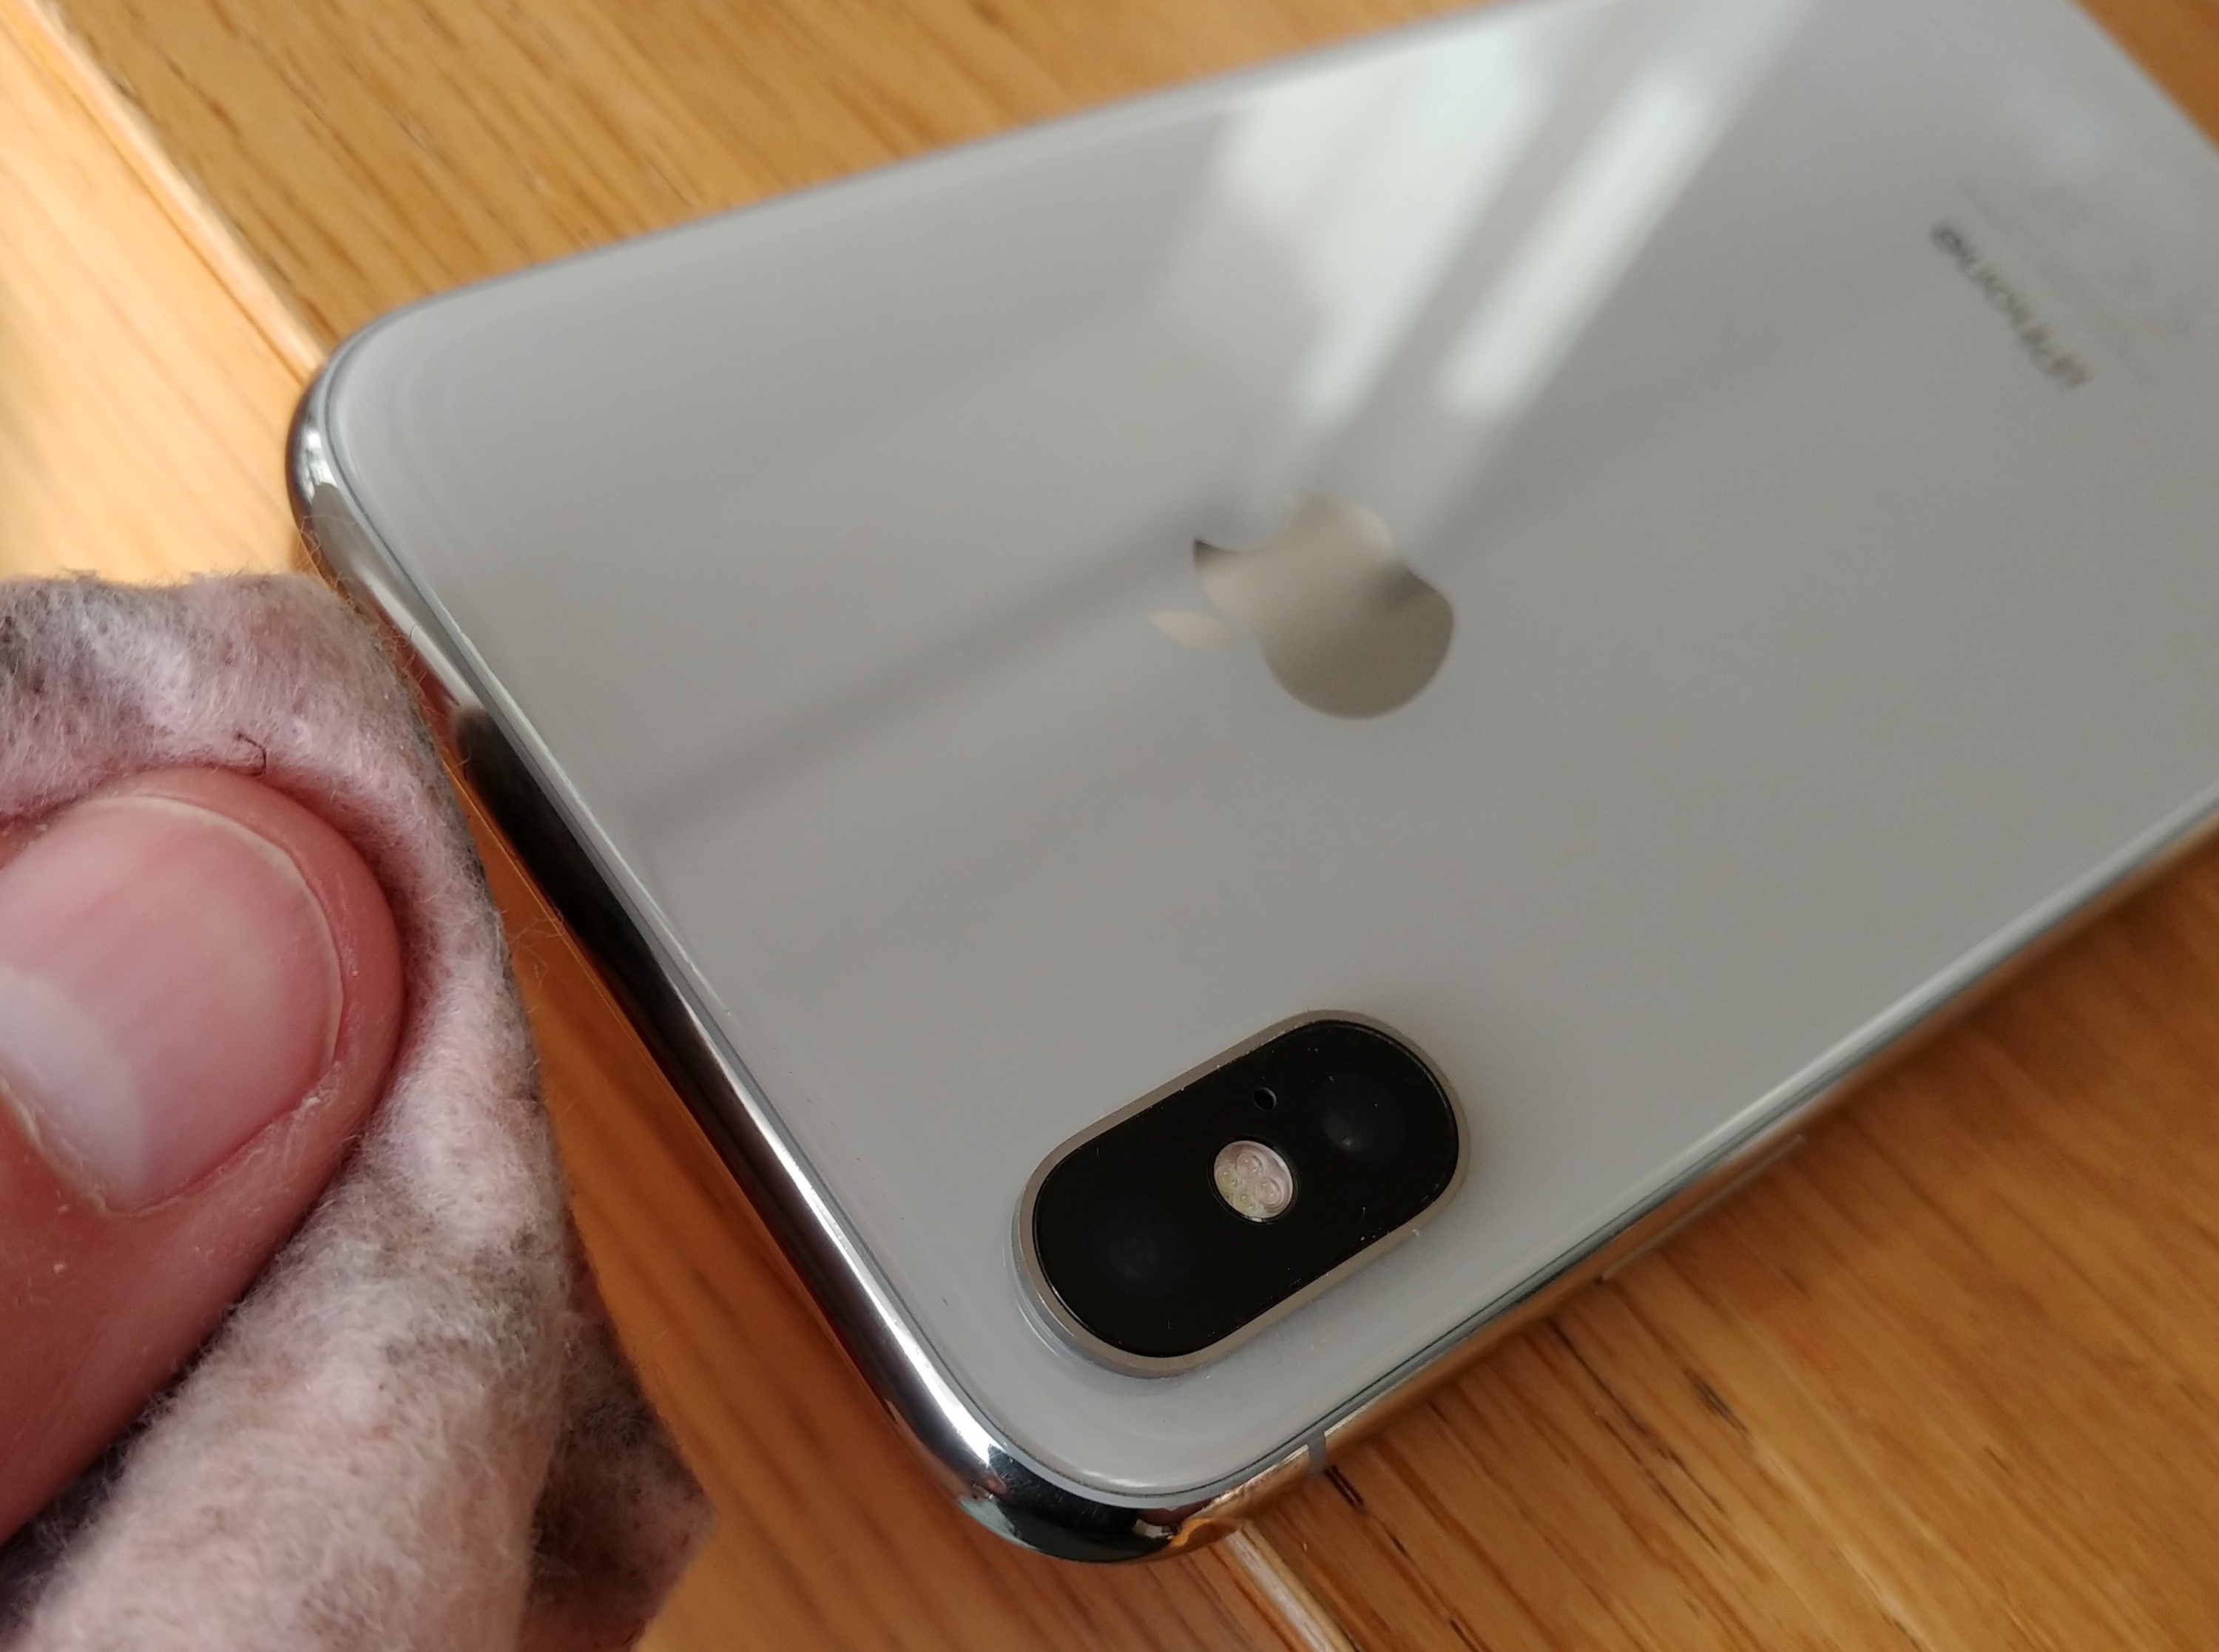 comment enlever rayures iphone X polish 4